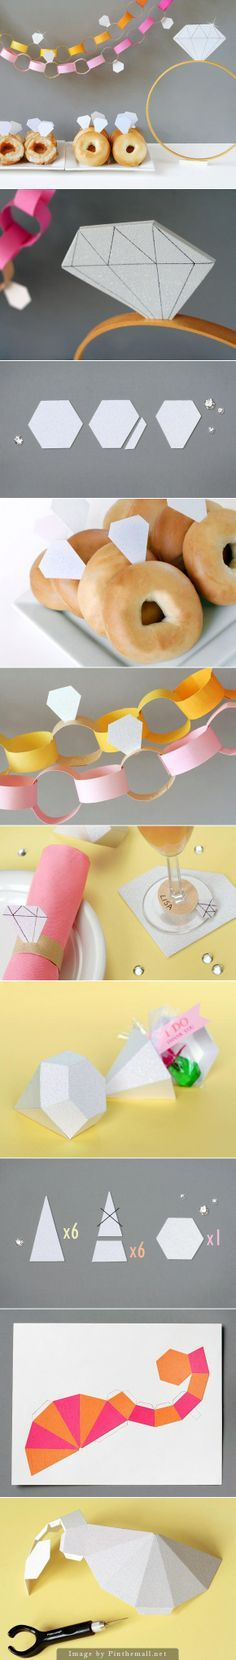 Diamond-Themed Bridal Shower: A bridal shower is a great opportunity to have fun with the geometric trend by choosing a diamond theme. Fiskars tools make it easy to craft up your own decorations for this special affair.